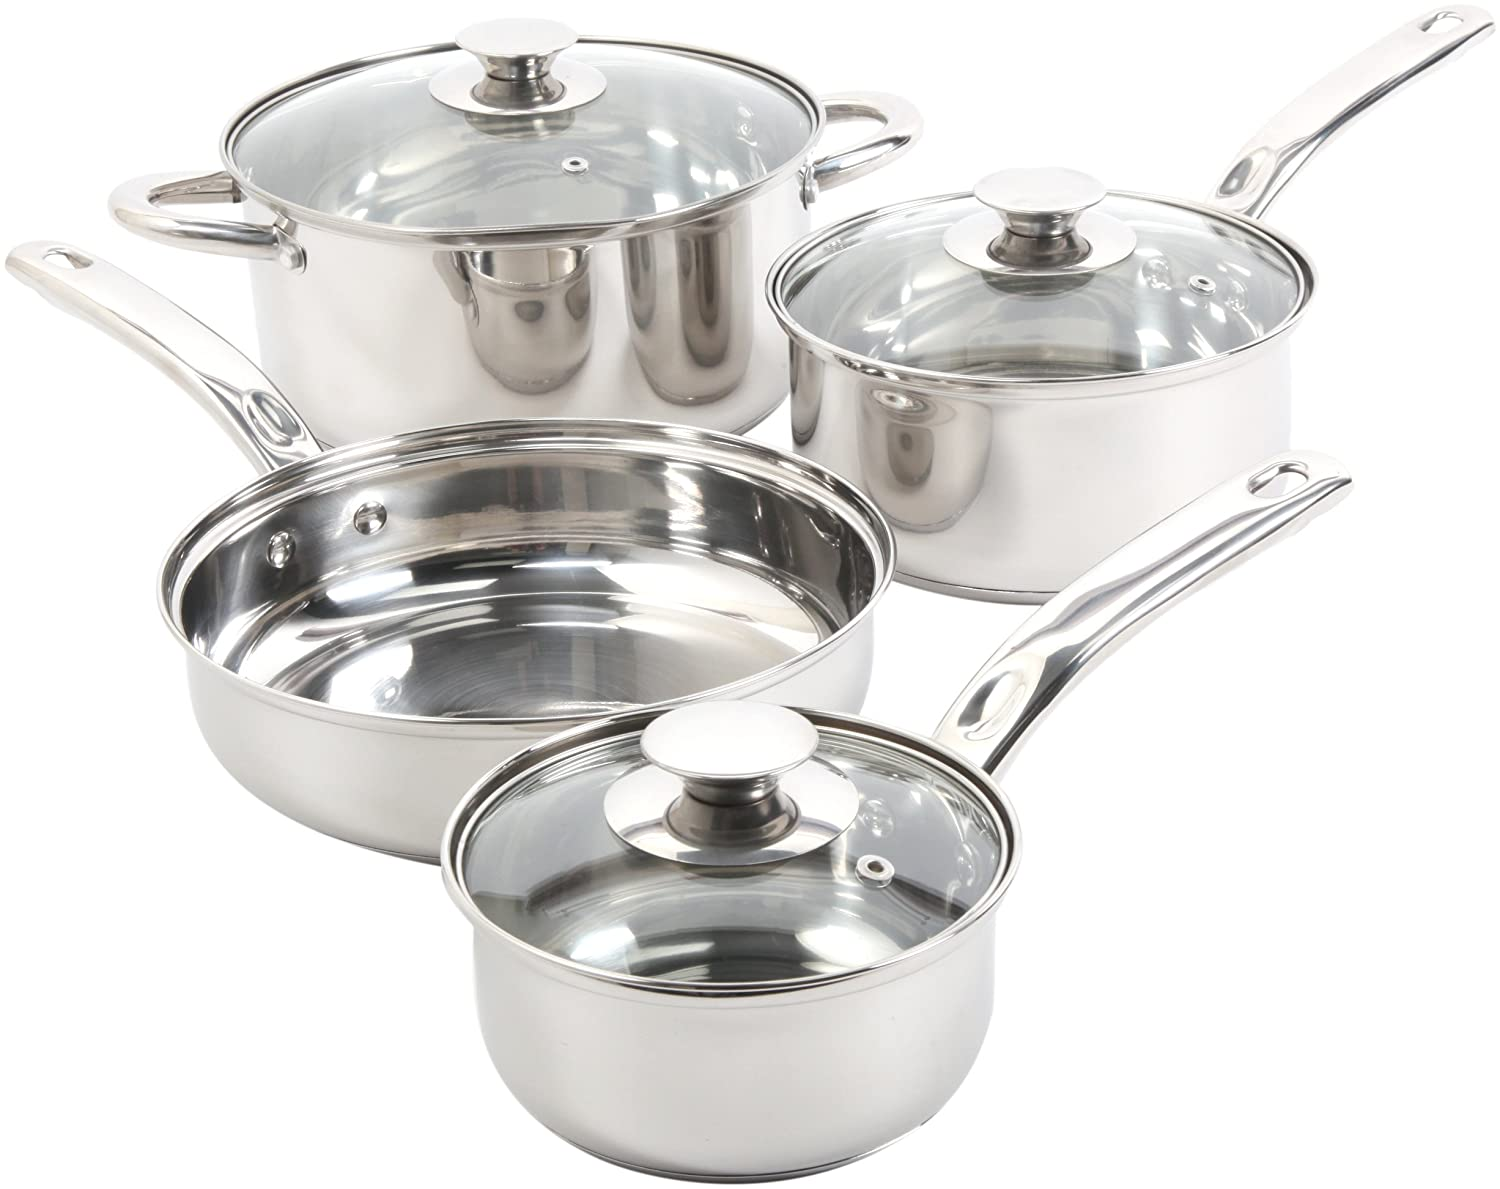 Sunbeam 91340.07 Ansonville 7-Piece Cookware Set, Silver Gibson Overseas Inc.